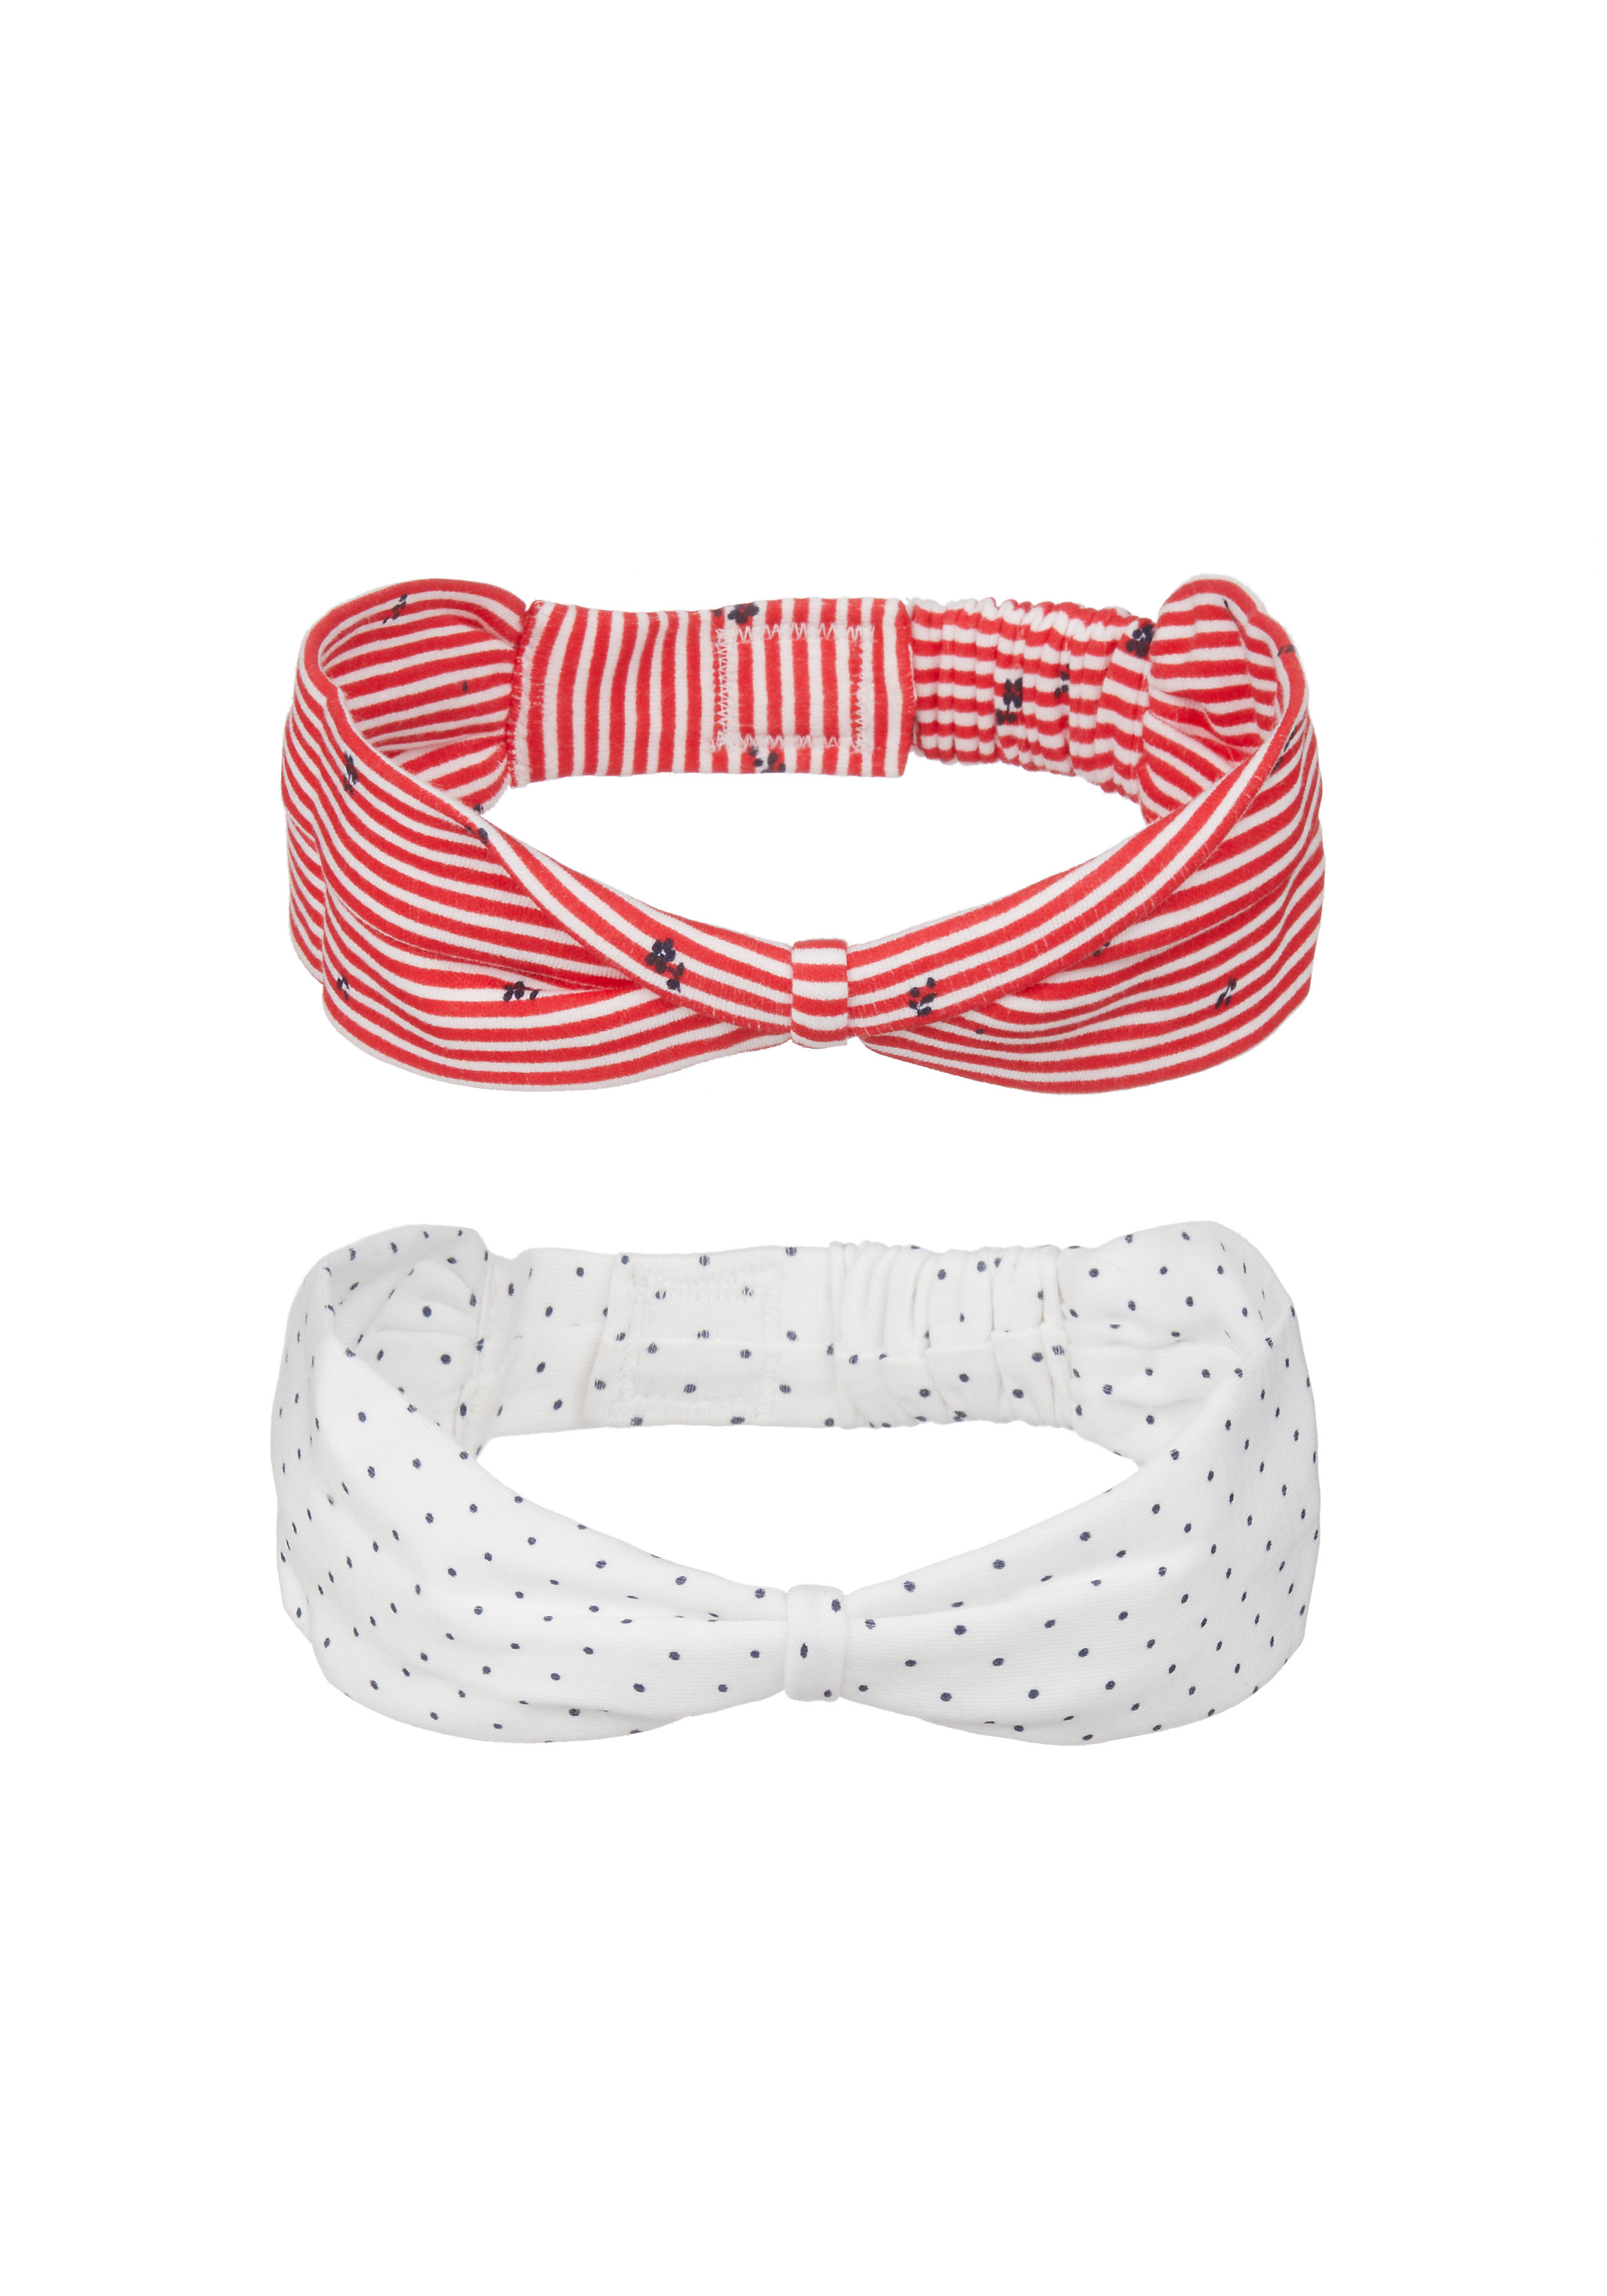 Mothercare | Girls Headbands Striped And Printed - Pack Of 2 - Multicolor